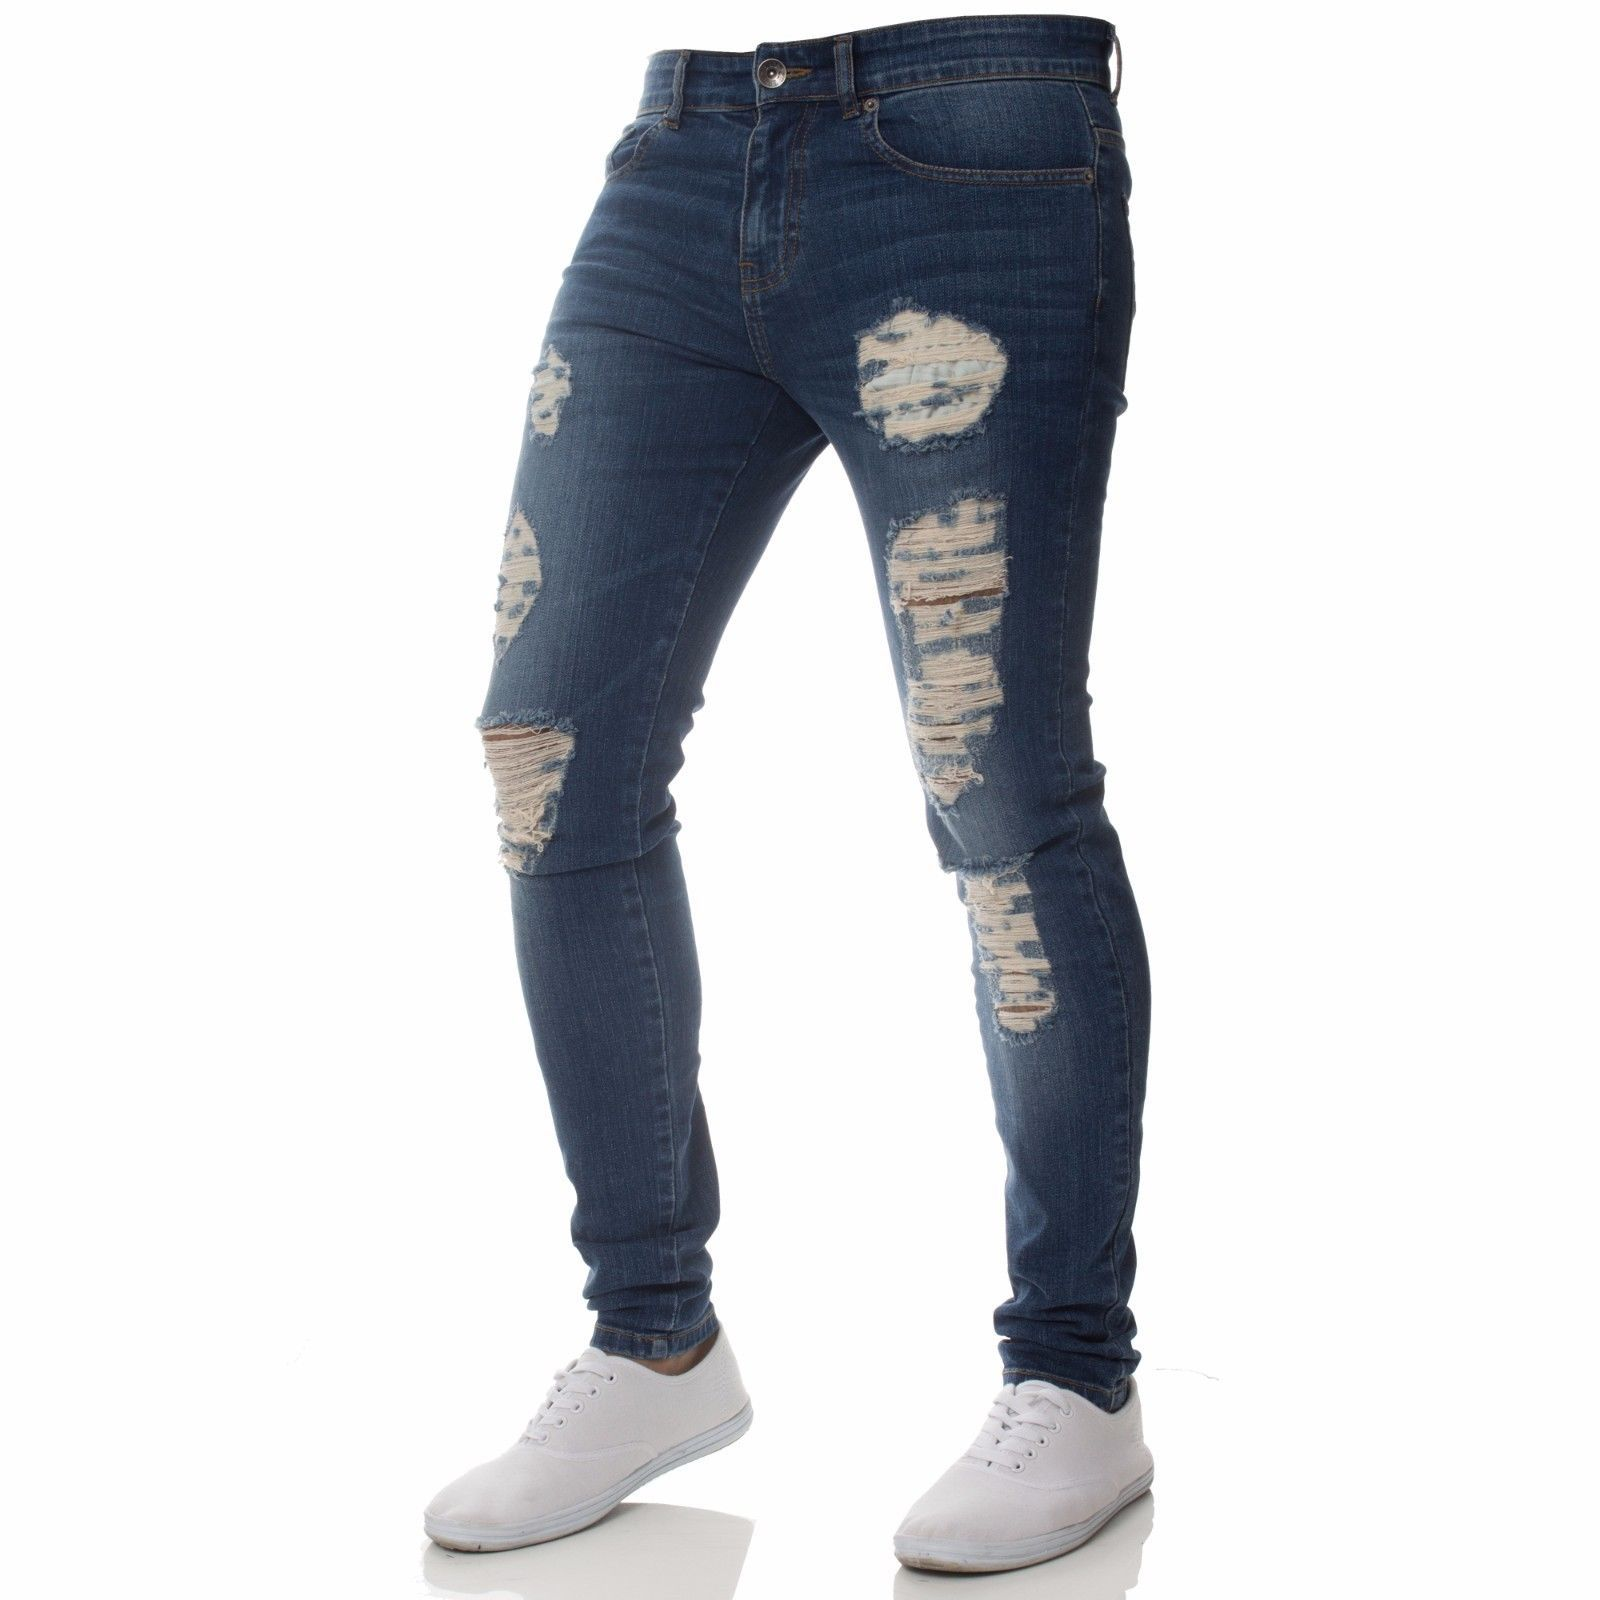 Men's Ripped Repaired Skinny Stretch Jeans